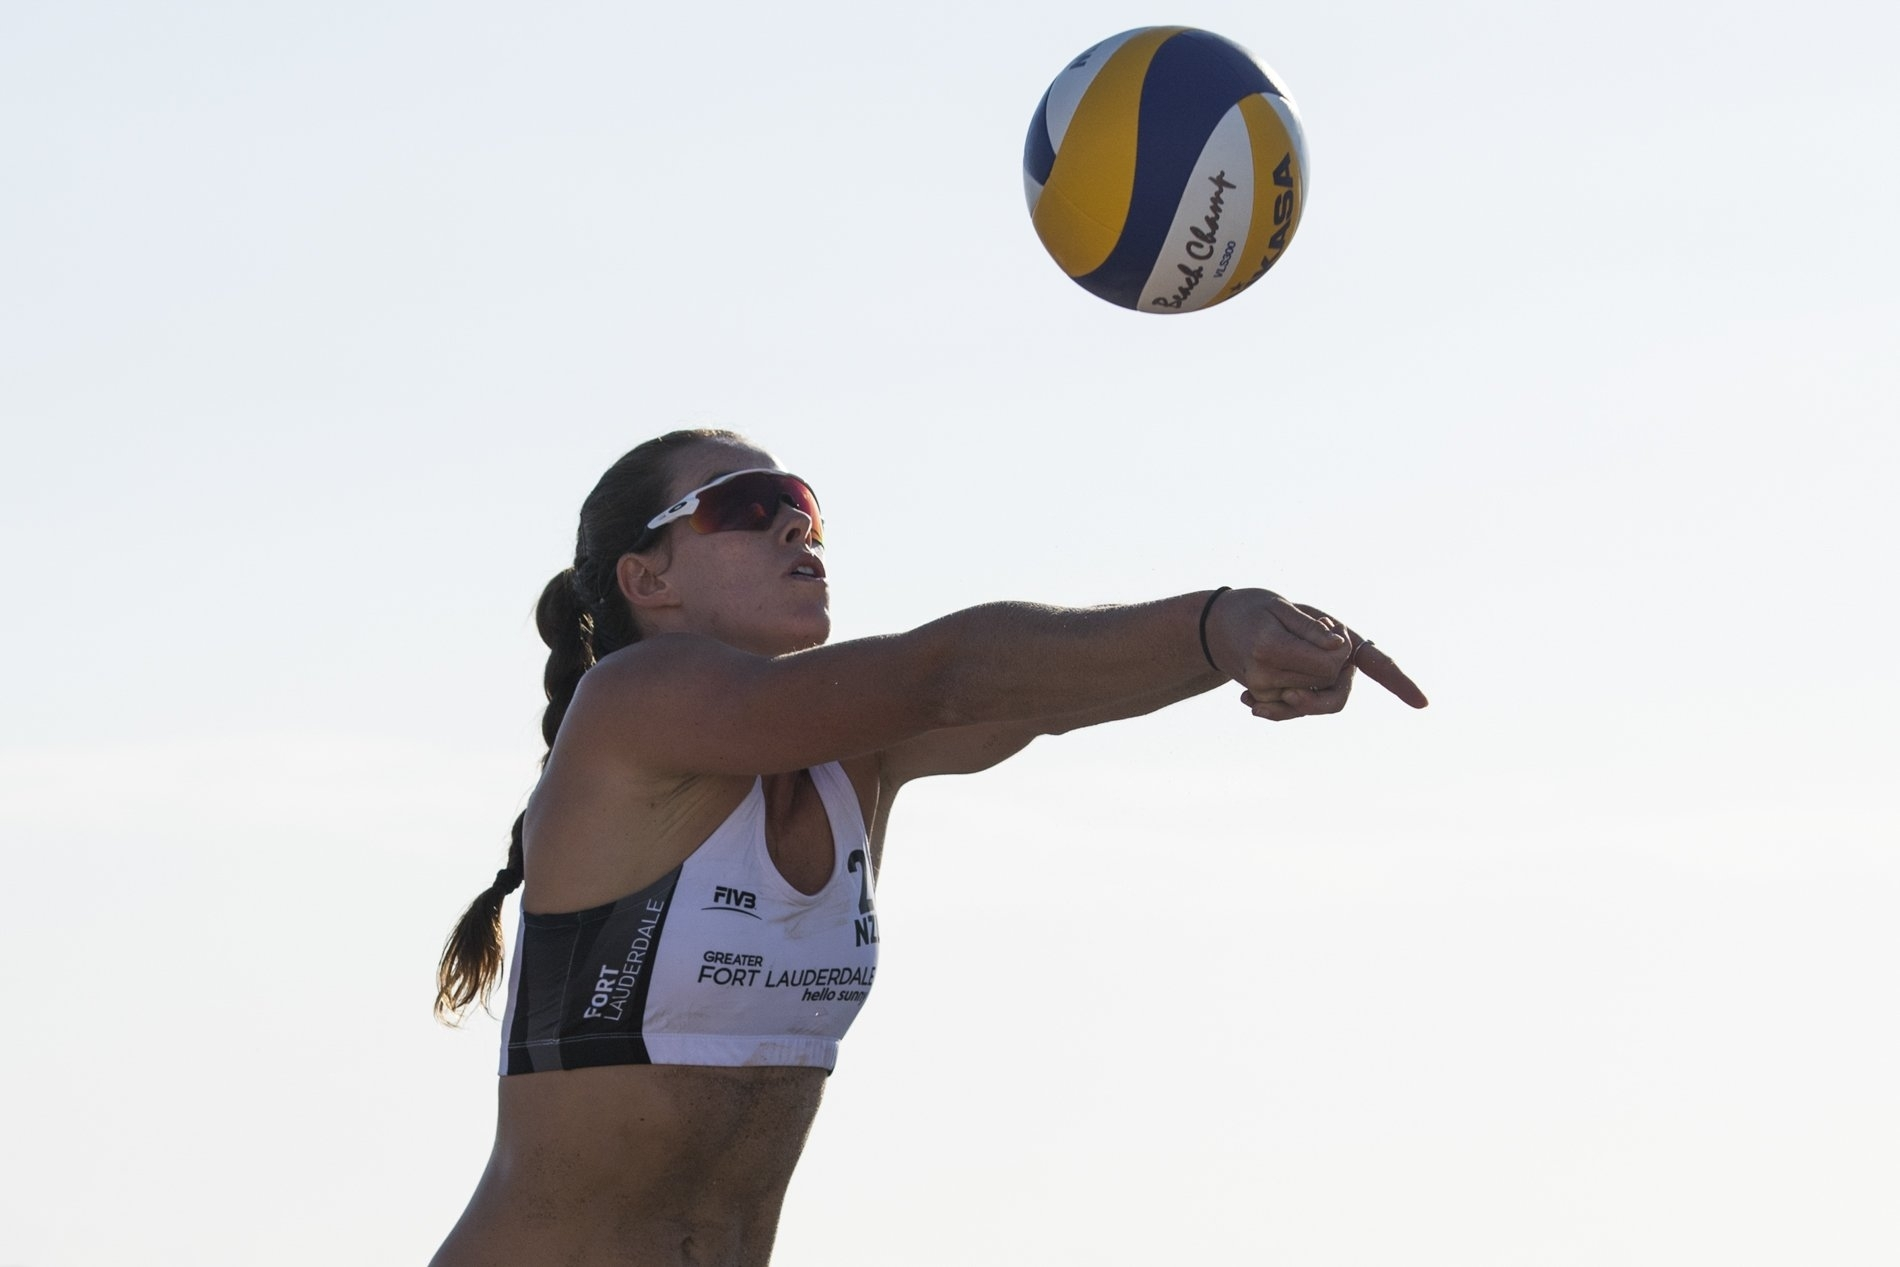 Shaunna Polley in action at the Fort Lauderdale Major